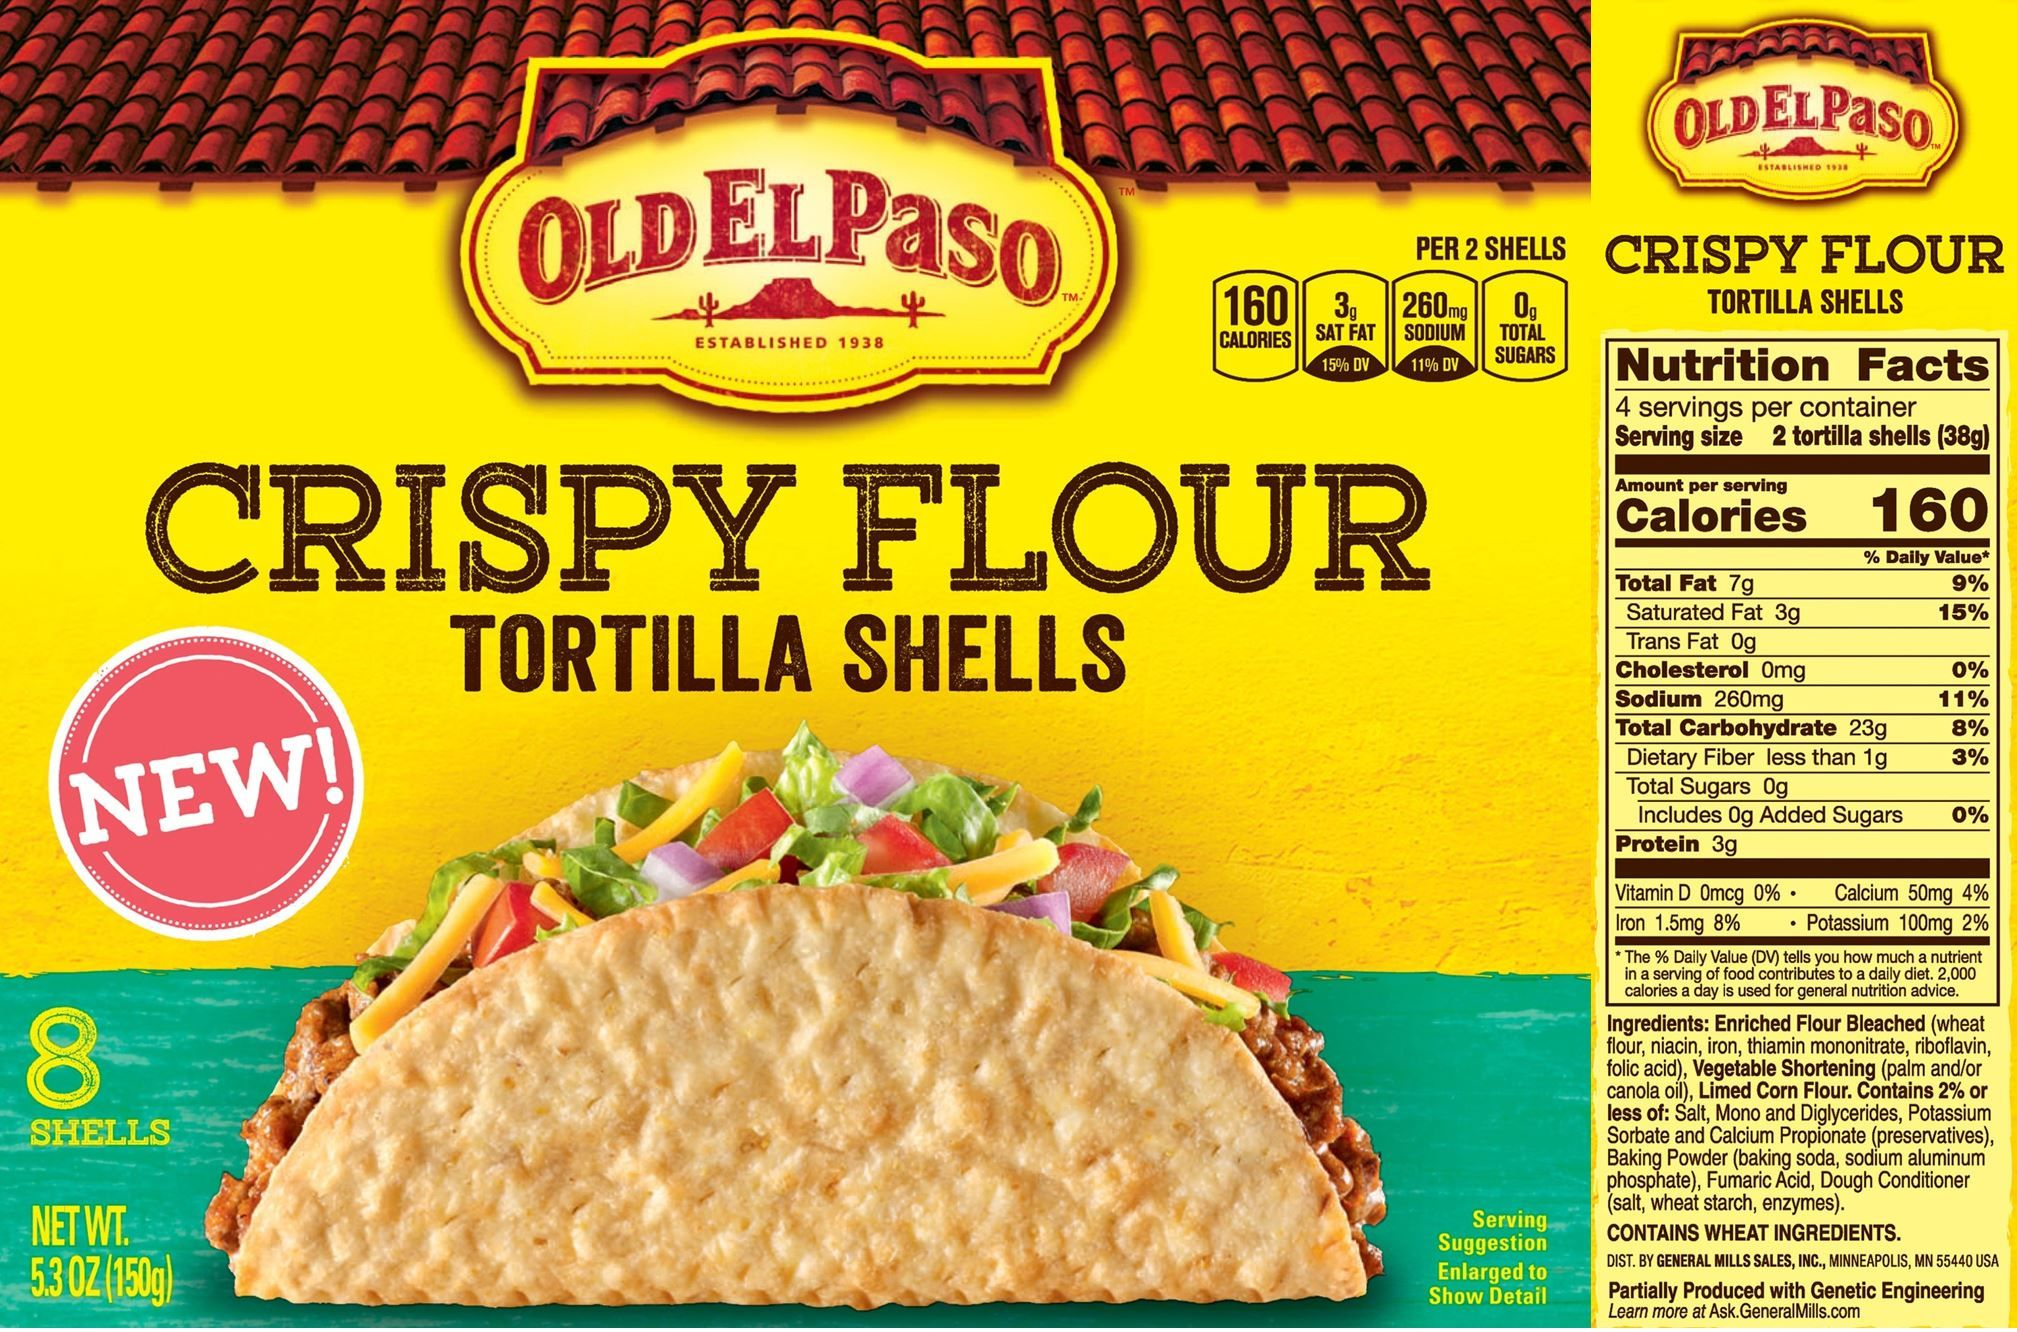 The Updated Nutrition Facts Label As Seen On Old El Paso Crispy Flour Tortilla Shells Image Courtesy Of Label Insigh Nutrition Facts Label Packaged Food Food